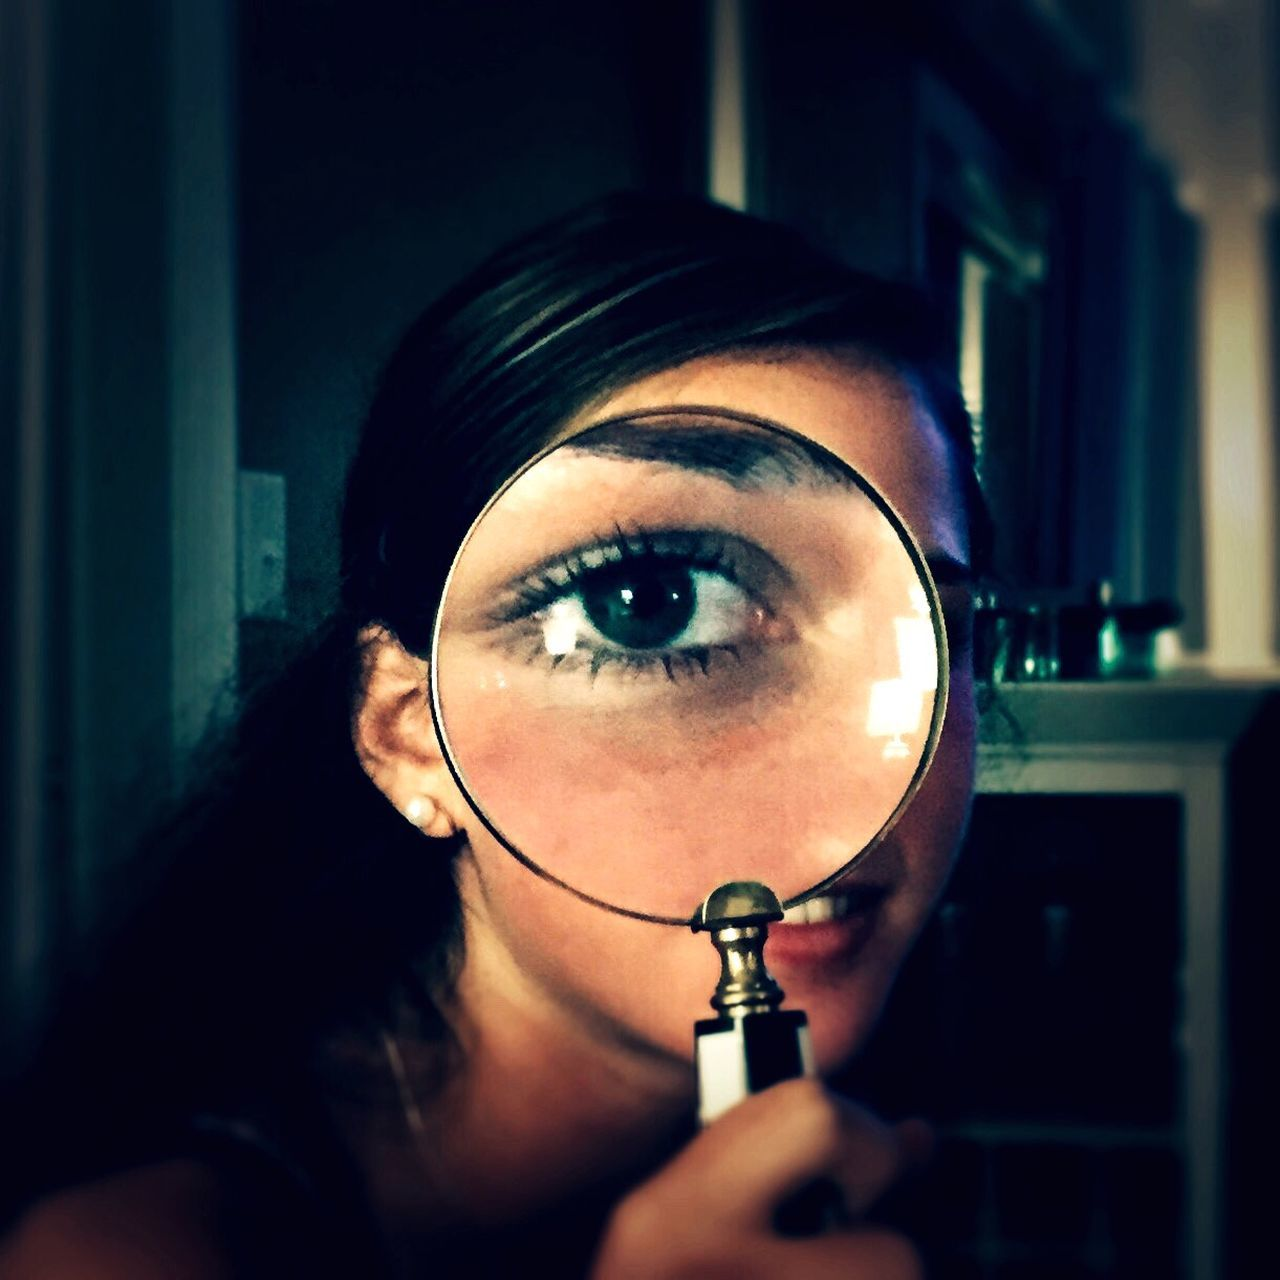 magnifying glass, one person, indoors, holding, real people, examining, young women, home interior, close-up, eyesight, human eye, women, eye test equipment, young adult, day, adult, people